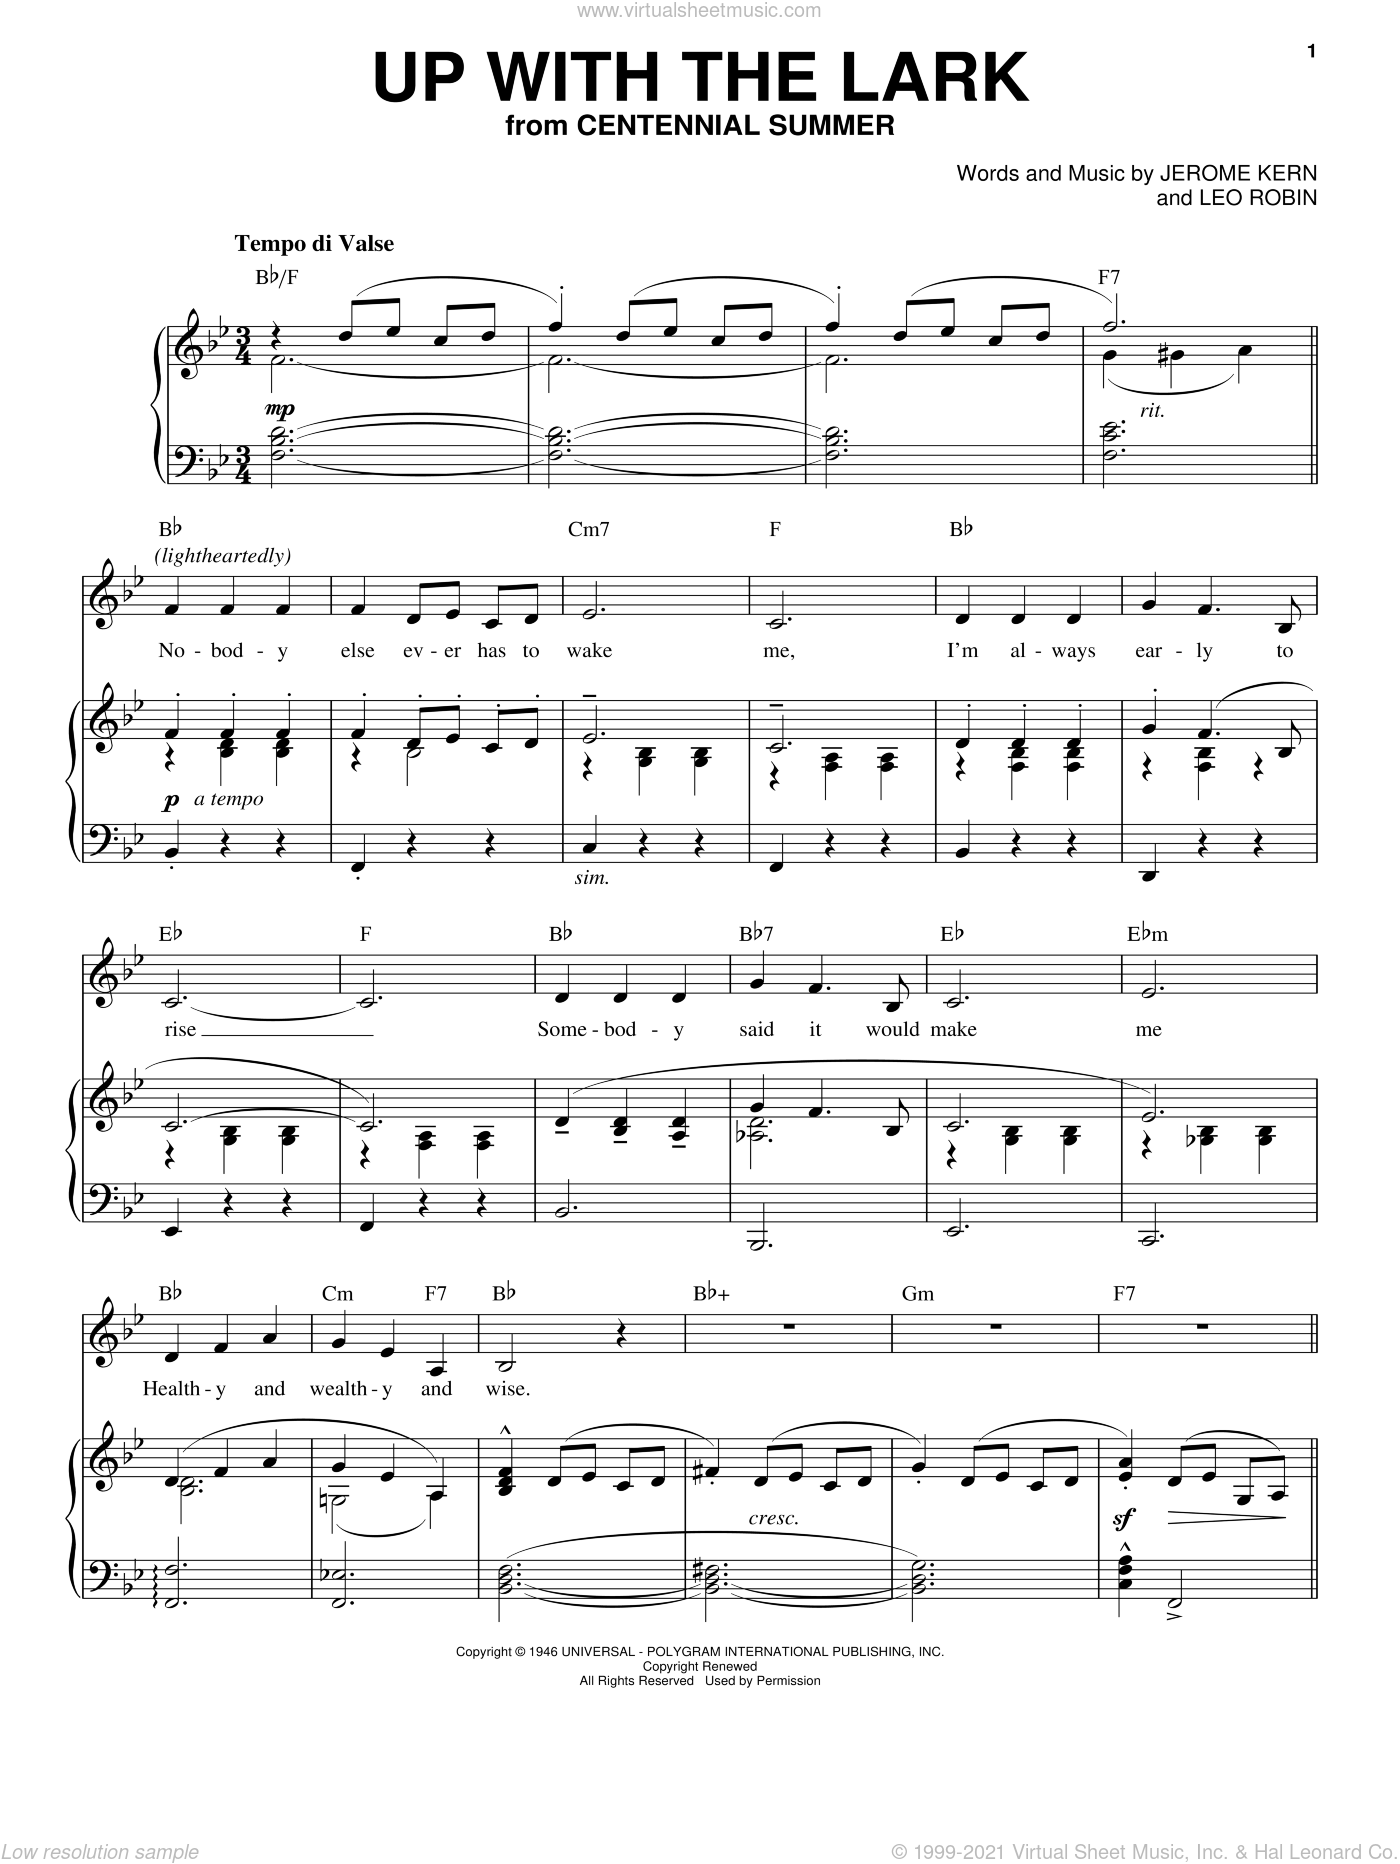 Up With The Lark sheet music for voice, piano or guitar by Leo Robin and Jerome Kern. Score Image Preview.